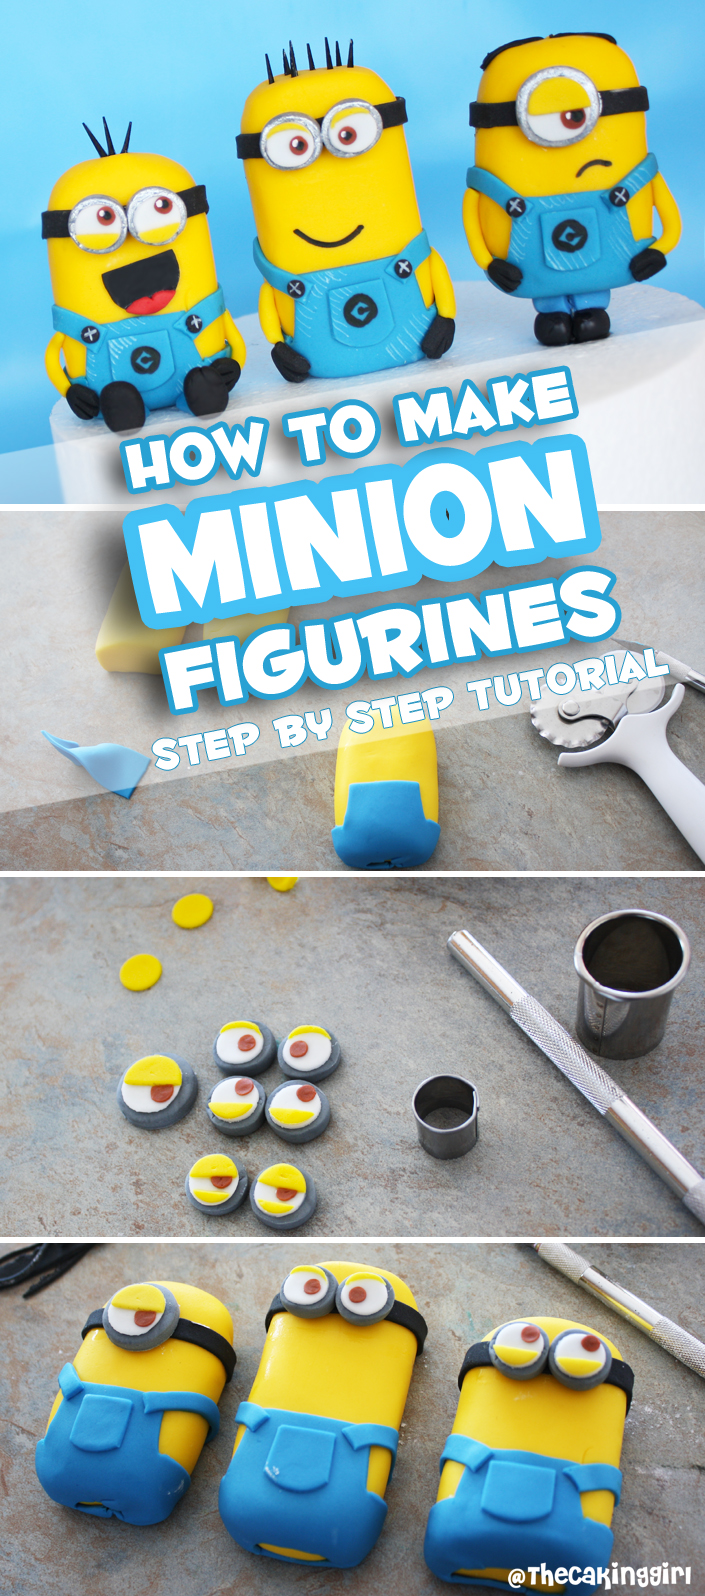 Thecakinggirl how to make minion figurines tutorial minion pinterest how to make a minion baditri Image collections